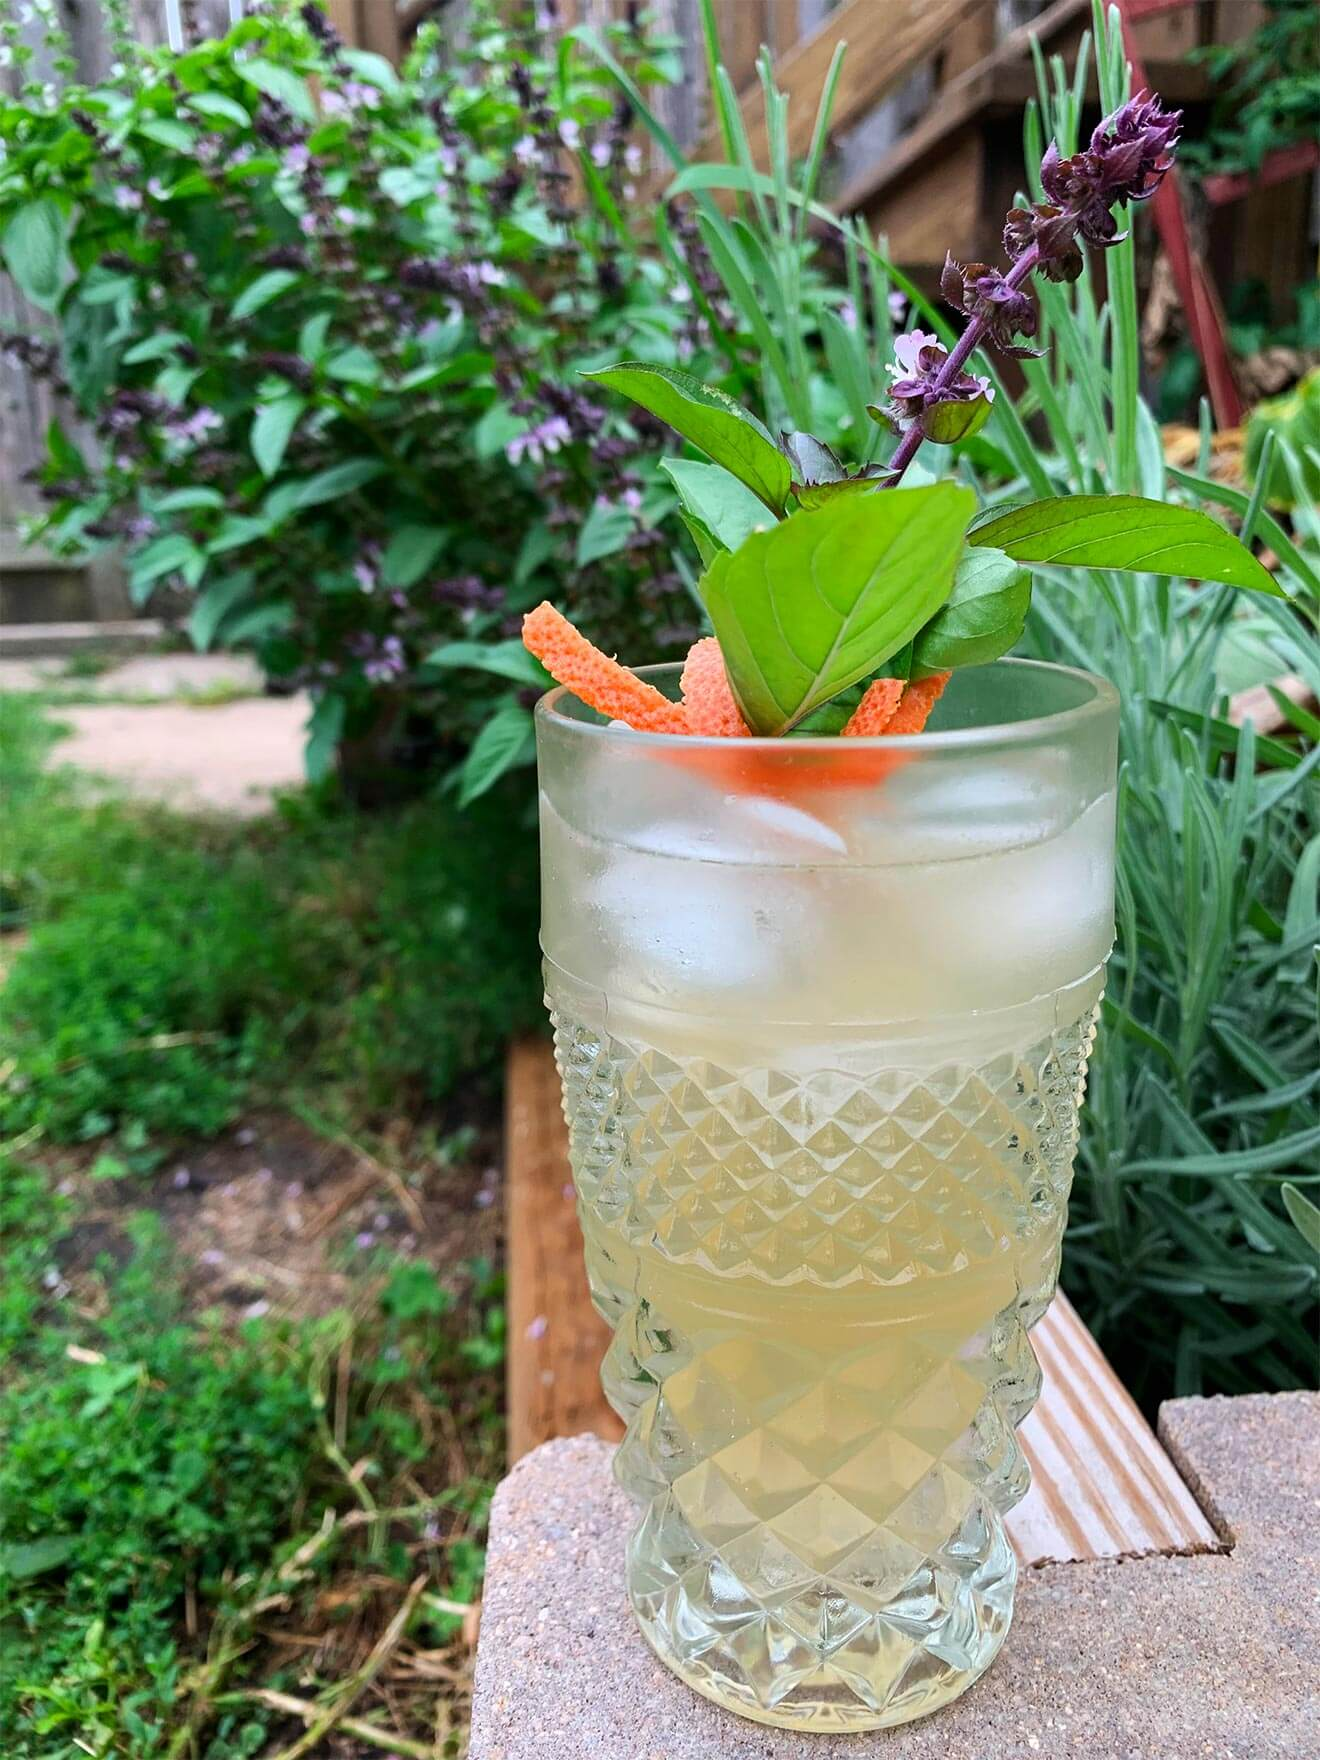 Summer Breeze cocktail with tropical garnish